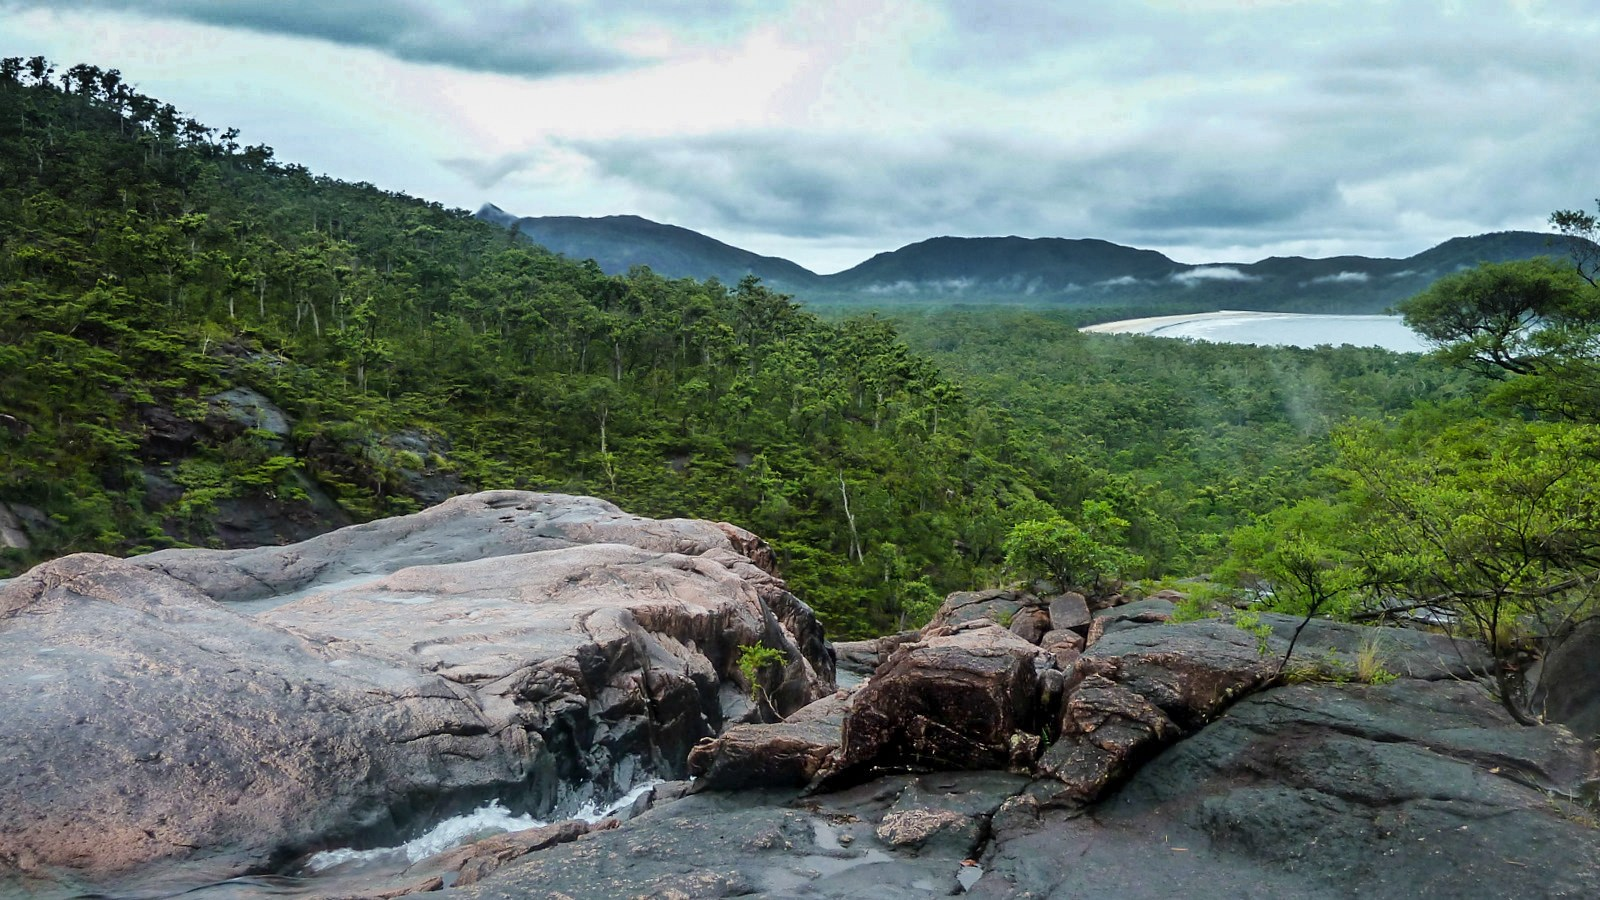 a photo of the mountains and jungle on hinchinbrook island